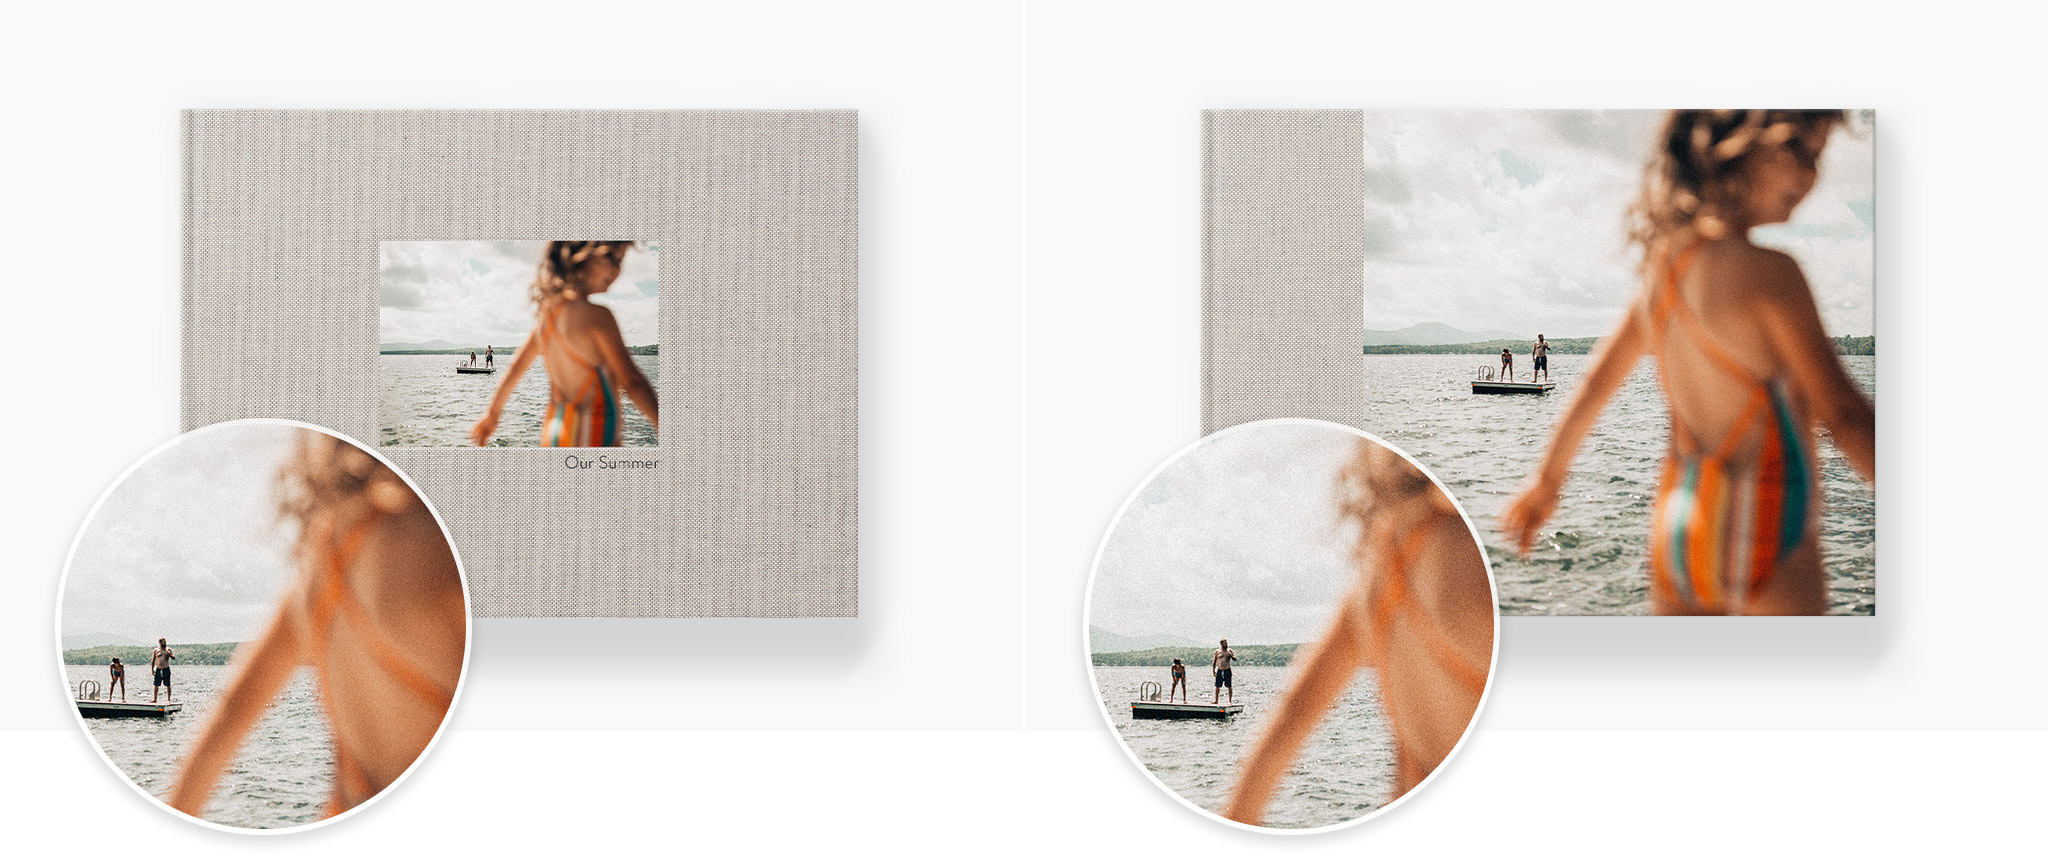 Two photo books with cover images  of a girl at a beach that have a soft focus in the foreground